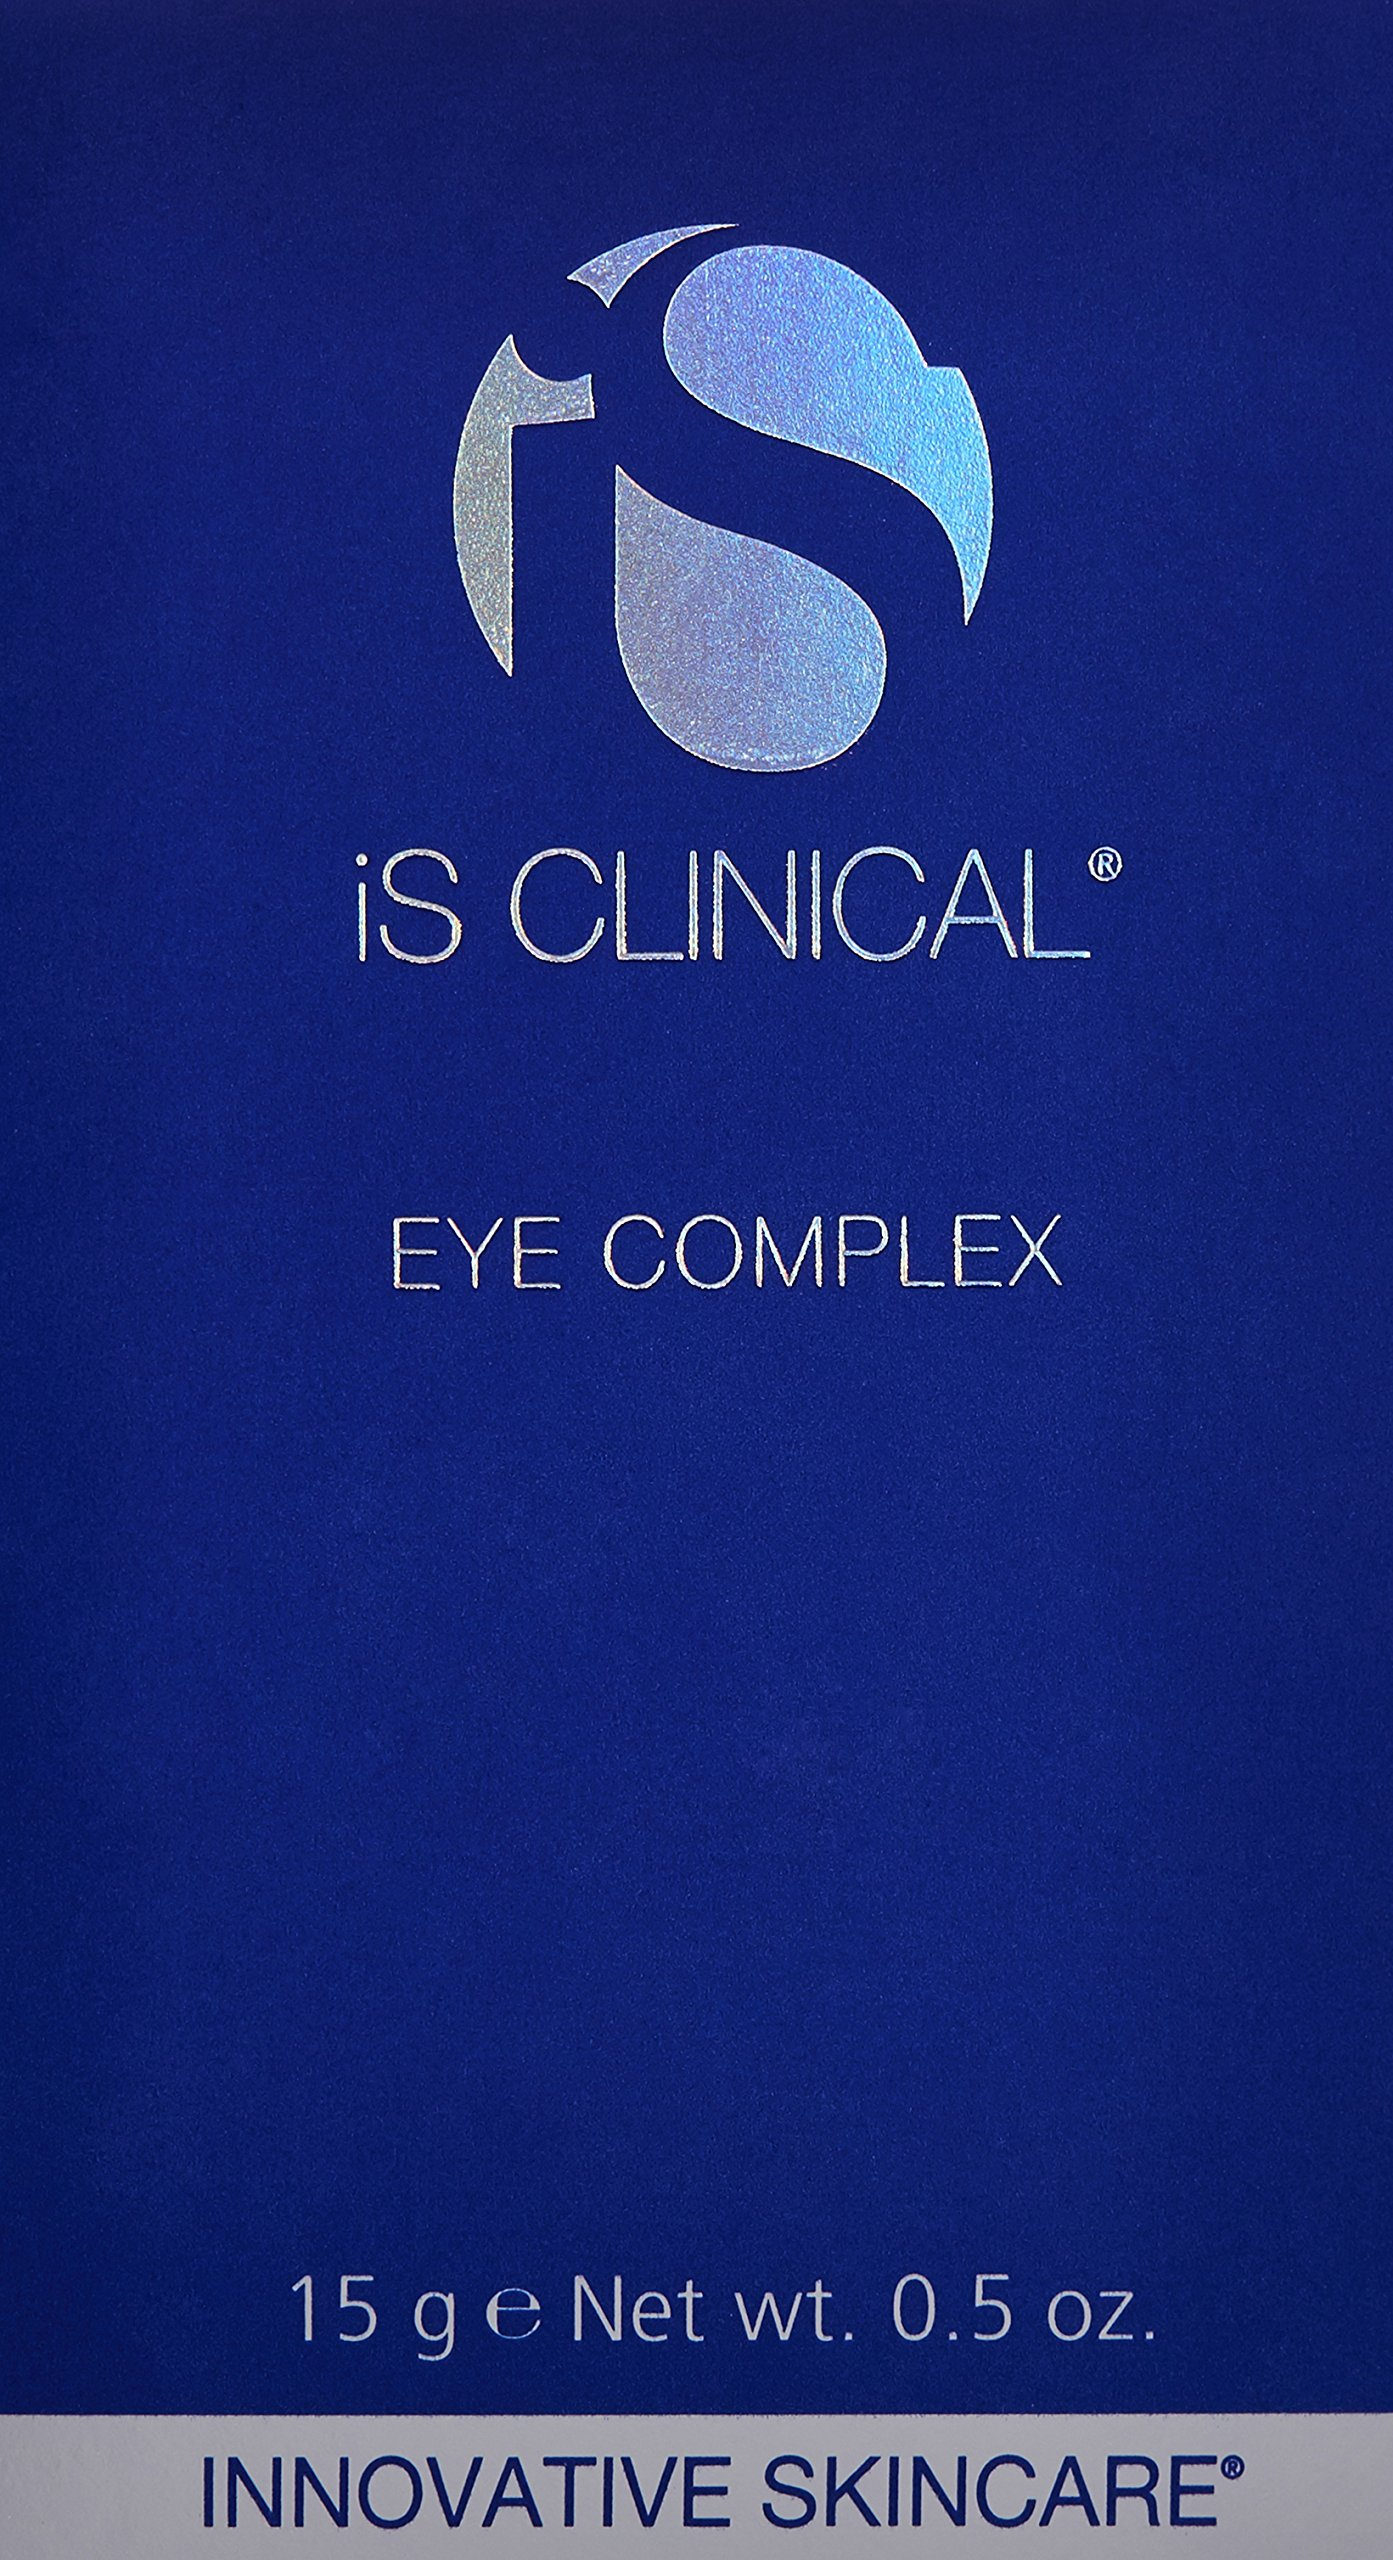 iS CLINICAL Eye Complex, 0.5 Oz by iS CLINICAL (Image #3)